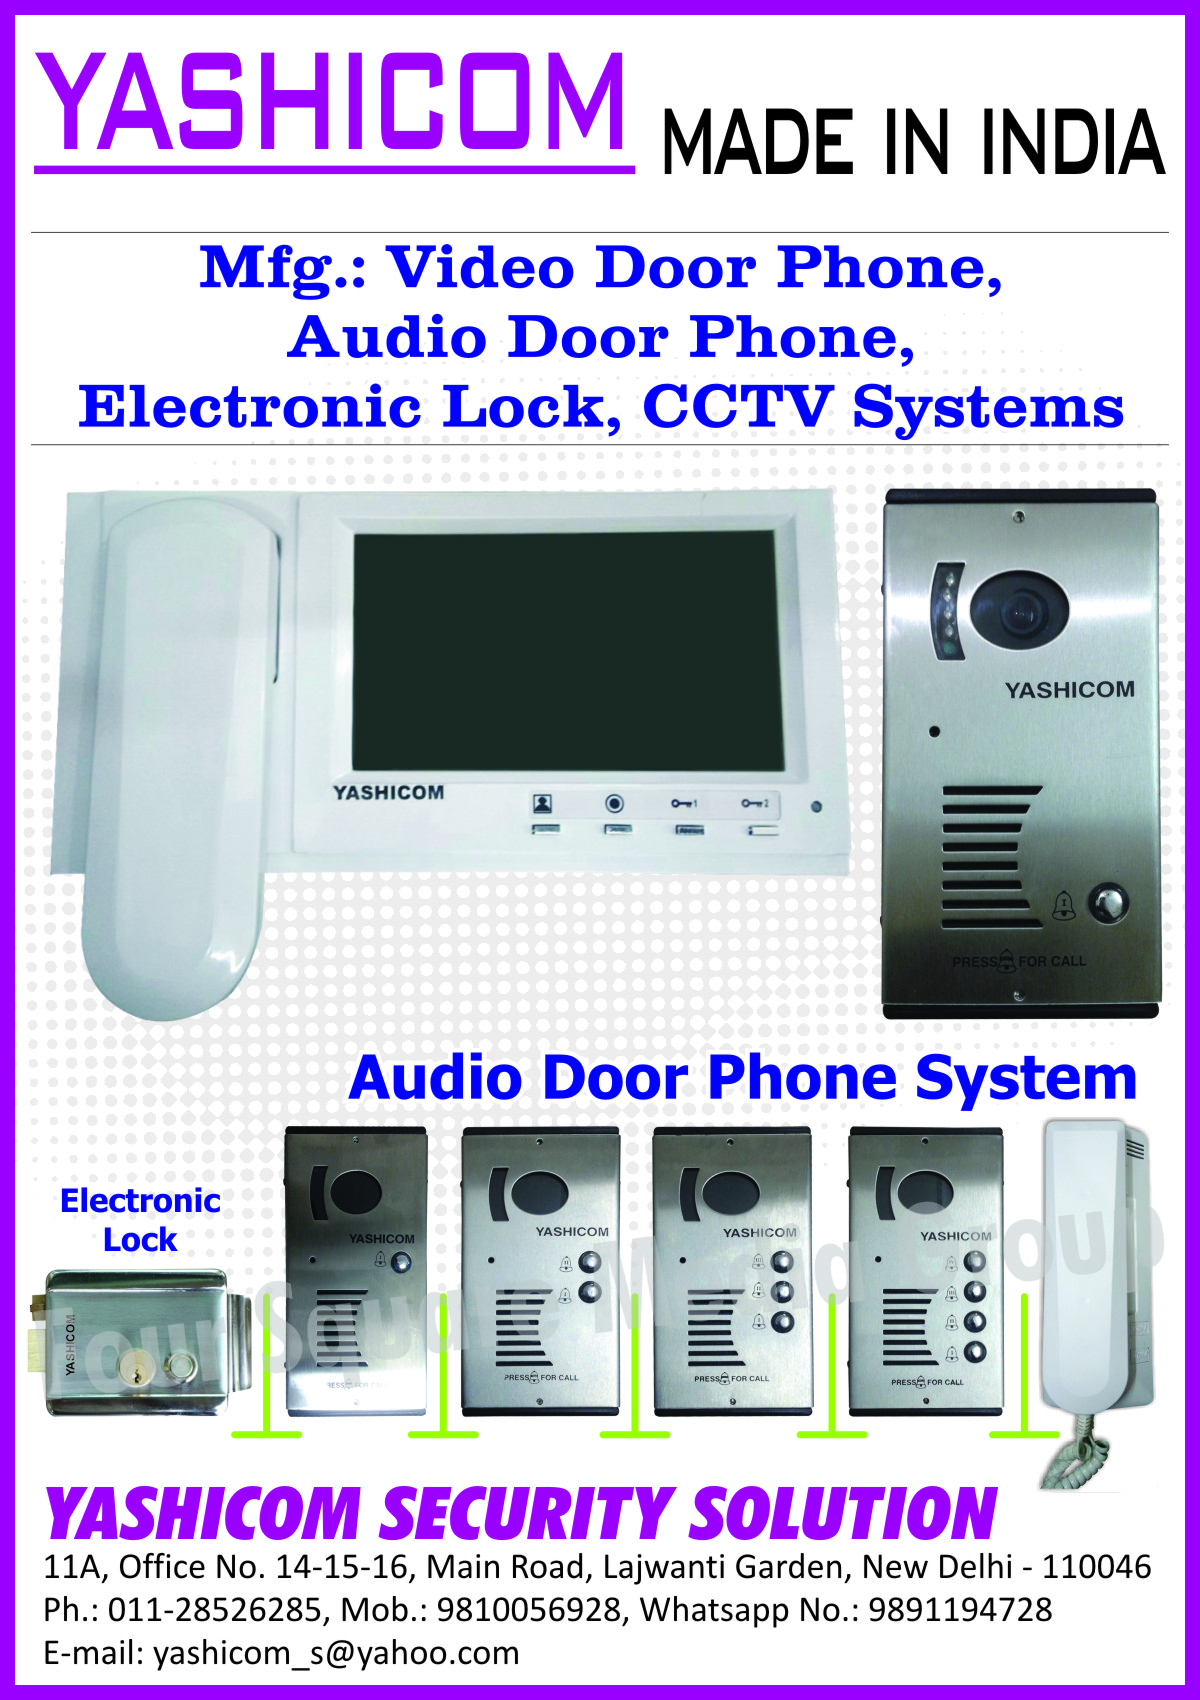 Video Door Phones, Audio Door Phones, Electronic Lock, CCTV Systems, Audio Door Phone Systems, Electronic Locks